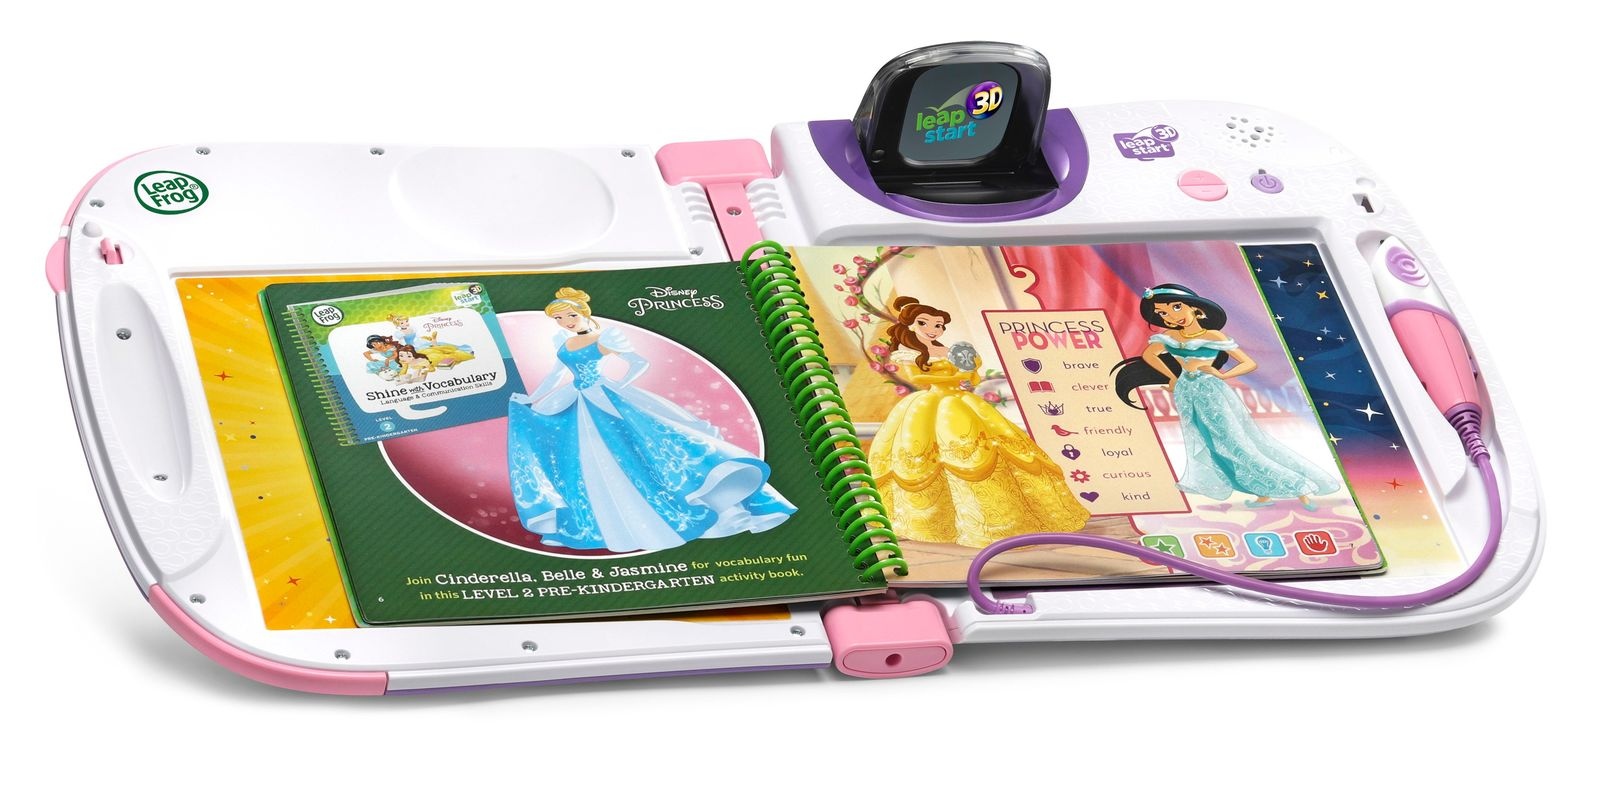 LeapFrog: LeapStart 3D (Pink) - Interactive Learning System